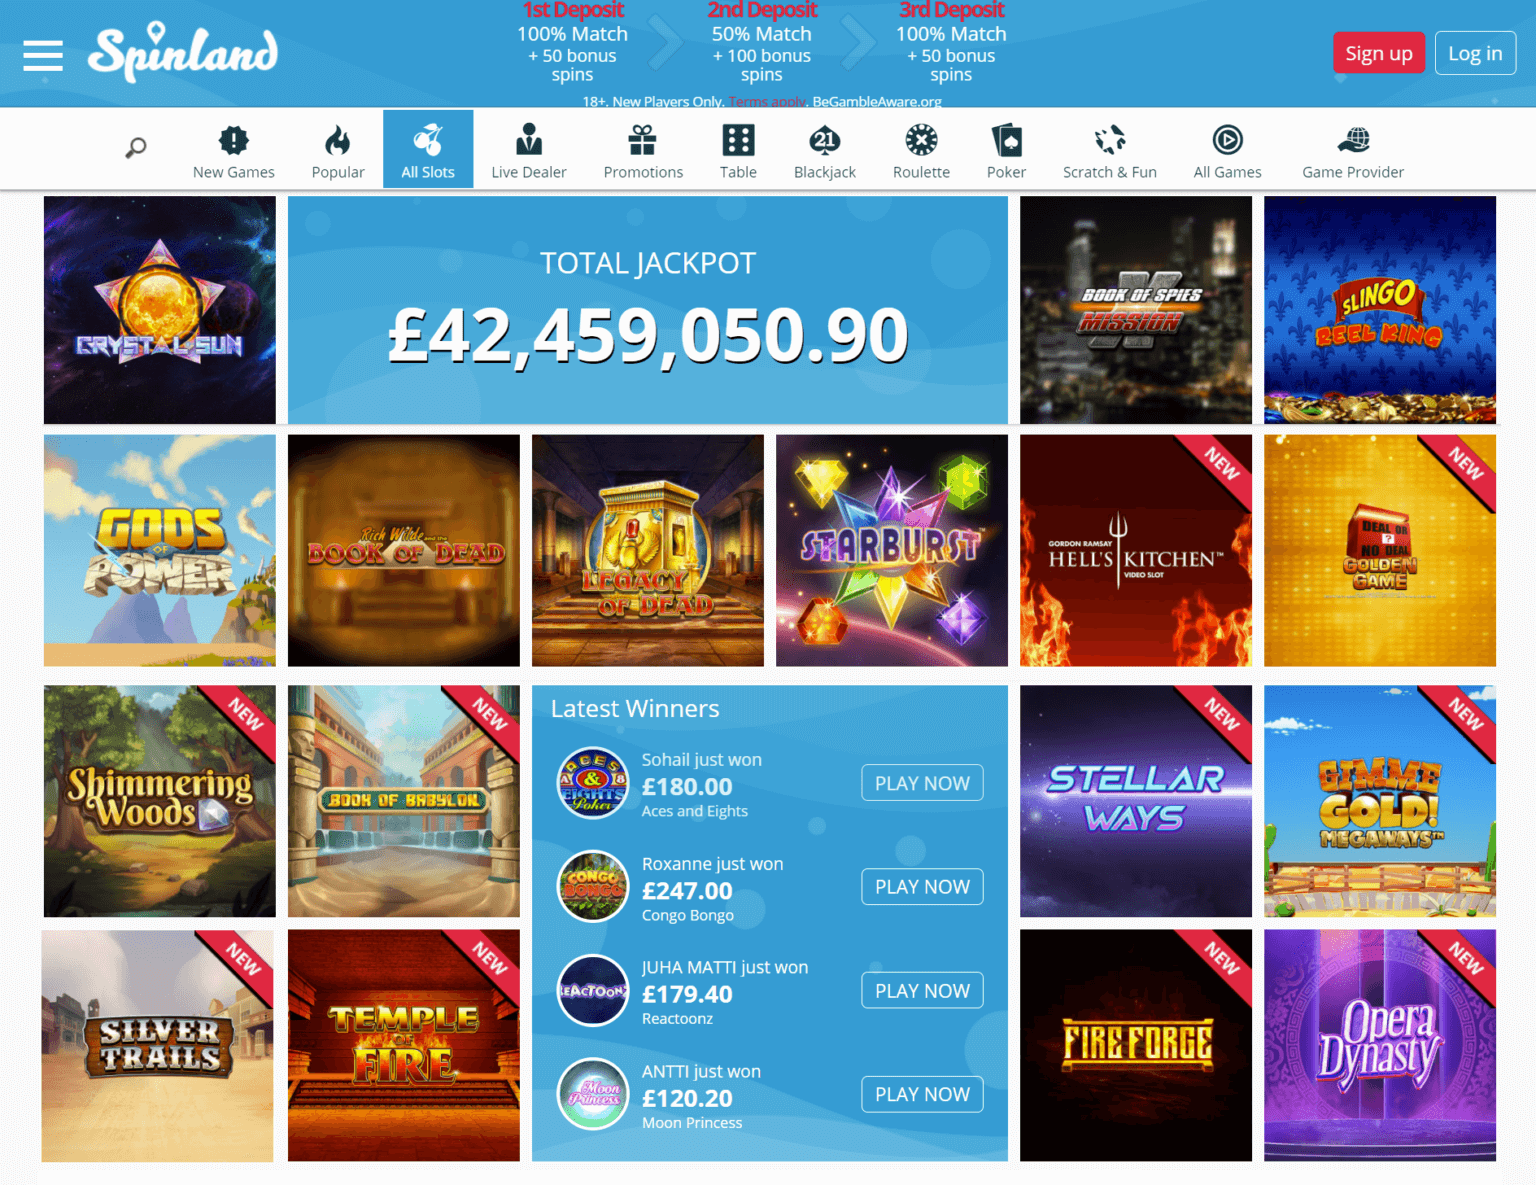 A screenshot of the Spinland slots page